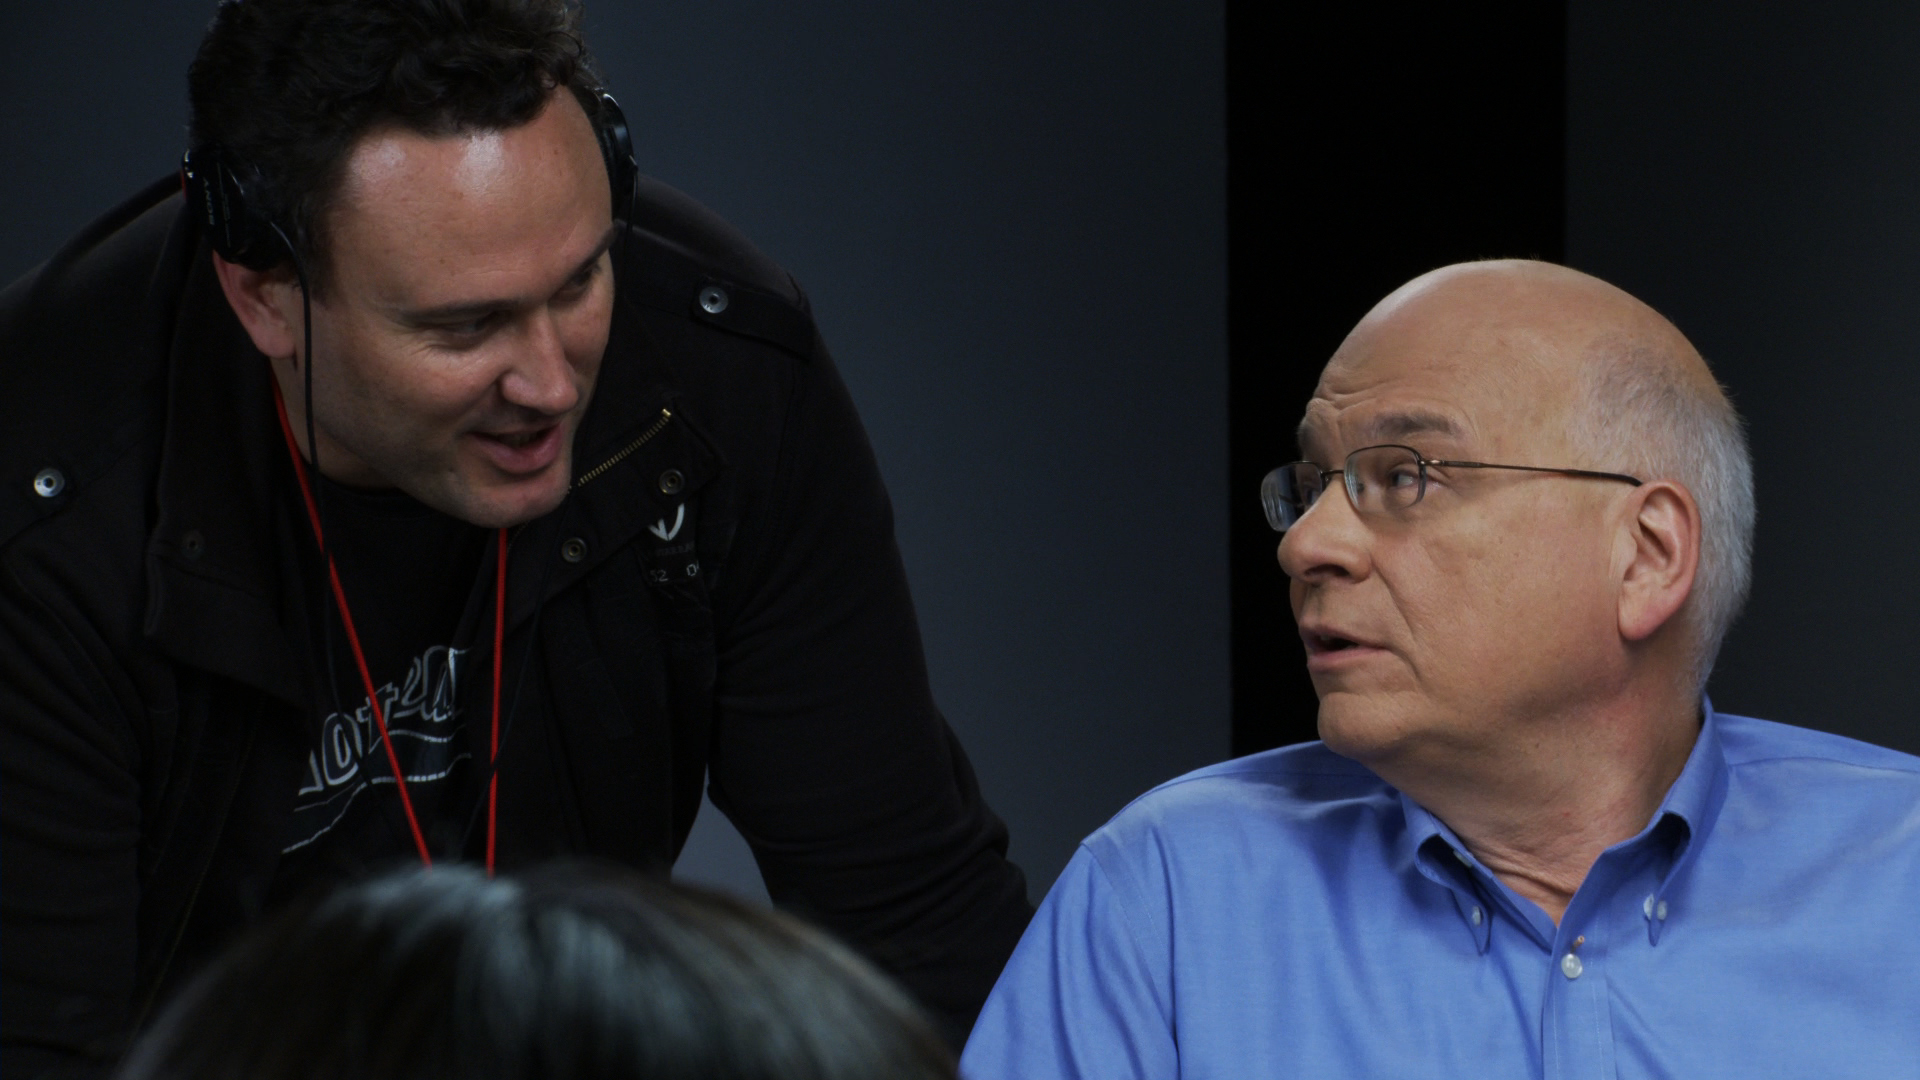 Filmmaker Andrew Hunt and Author Tim Keller